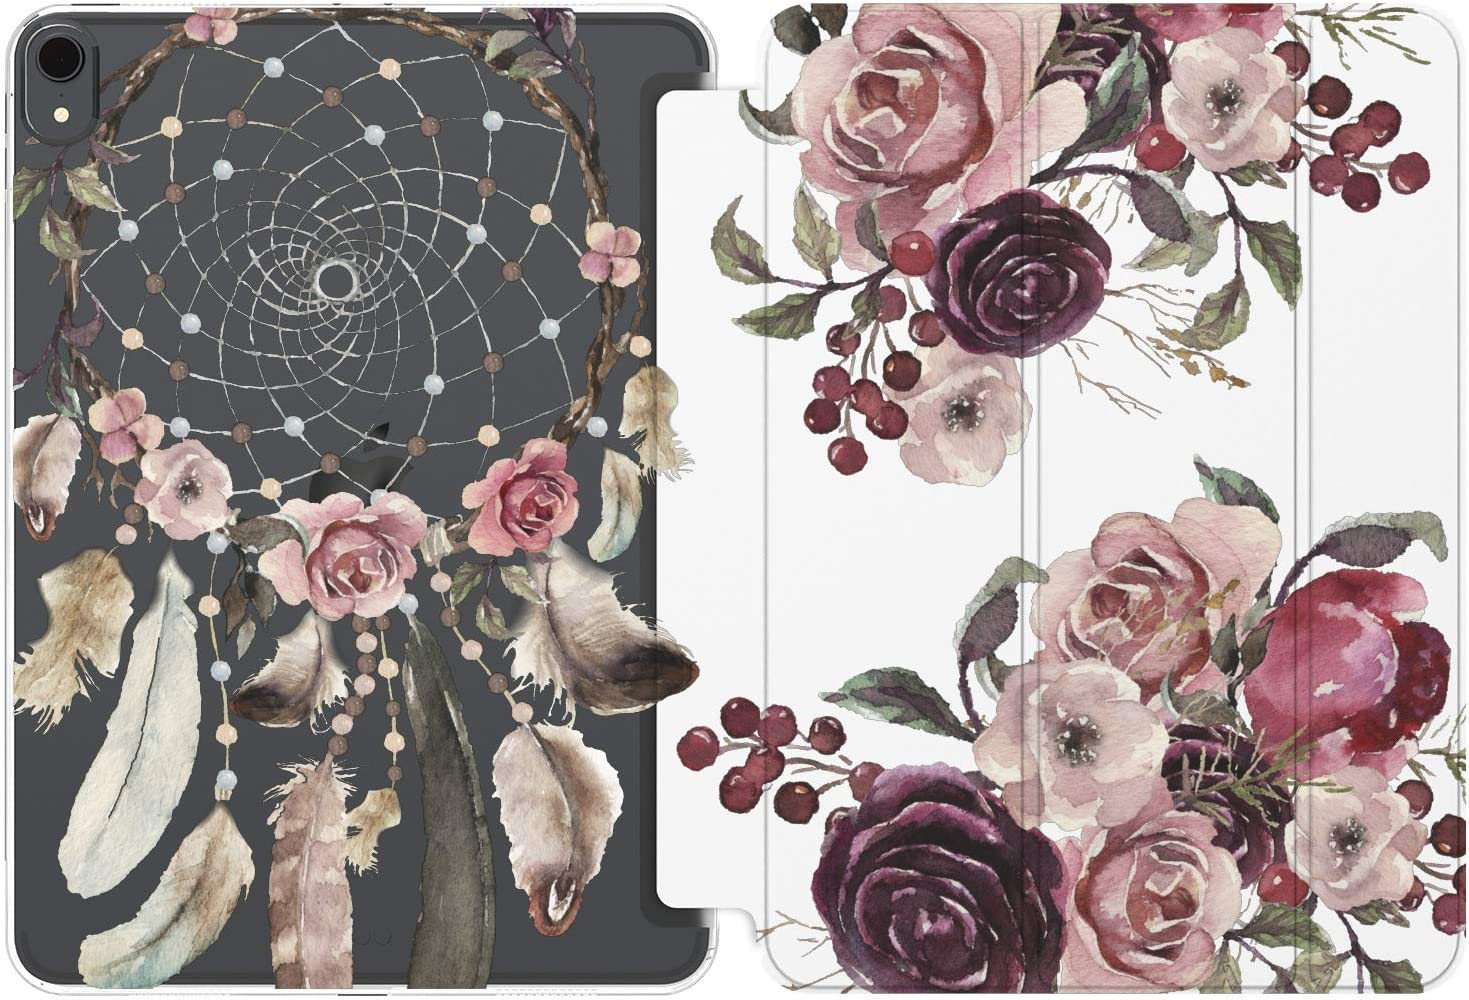 Cavka Case for Apple iPad Air 4th 2020 Gen 3th 10.2 12.9 Pro 11 10.5 9.7 Mini 5 4 3 2 1 Boho Magnetic Closure Purple Flowers Pink Dreamcatcher Girls Smart Cover Feather Lightweight Roses Floral